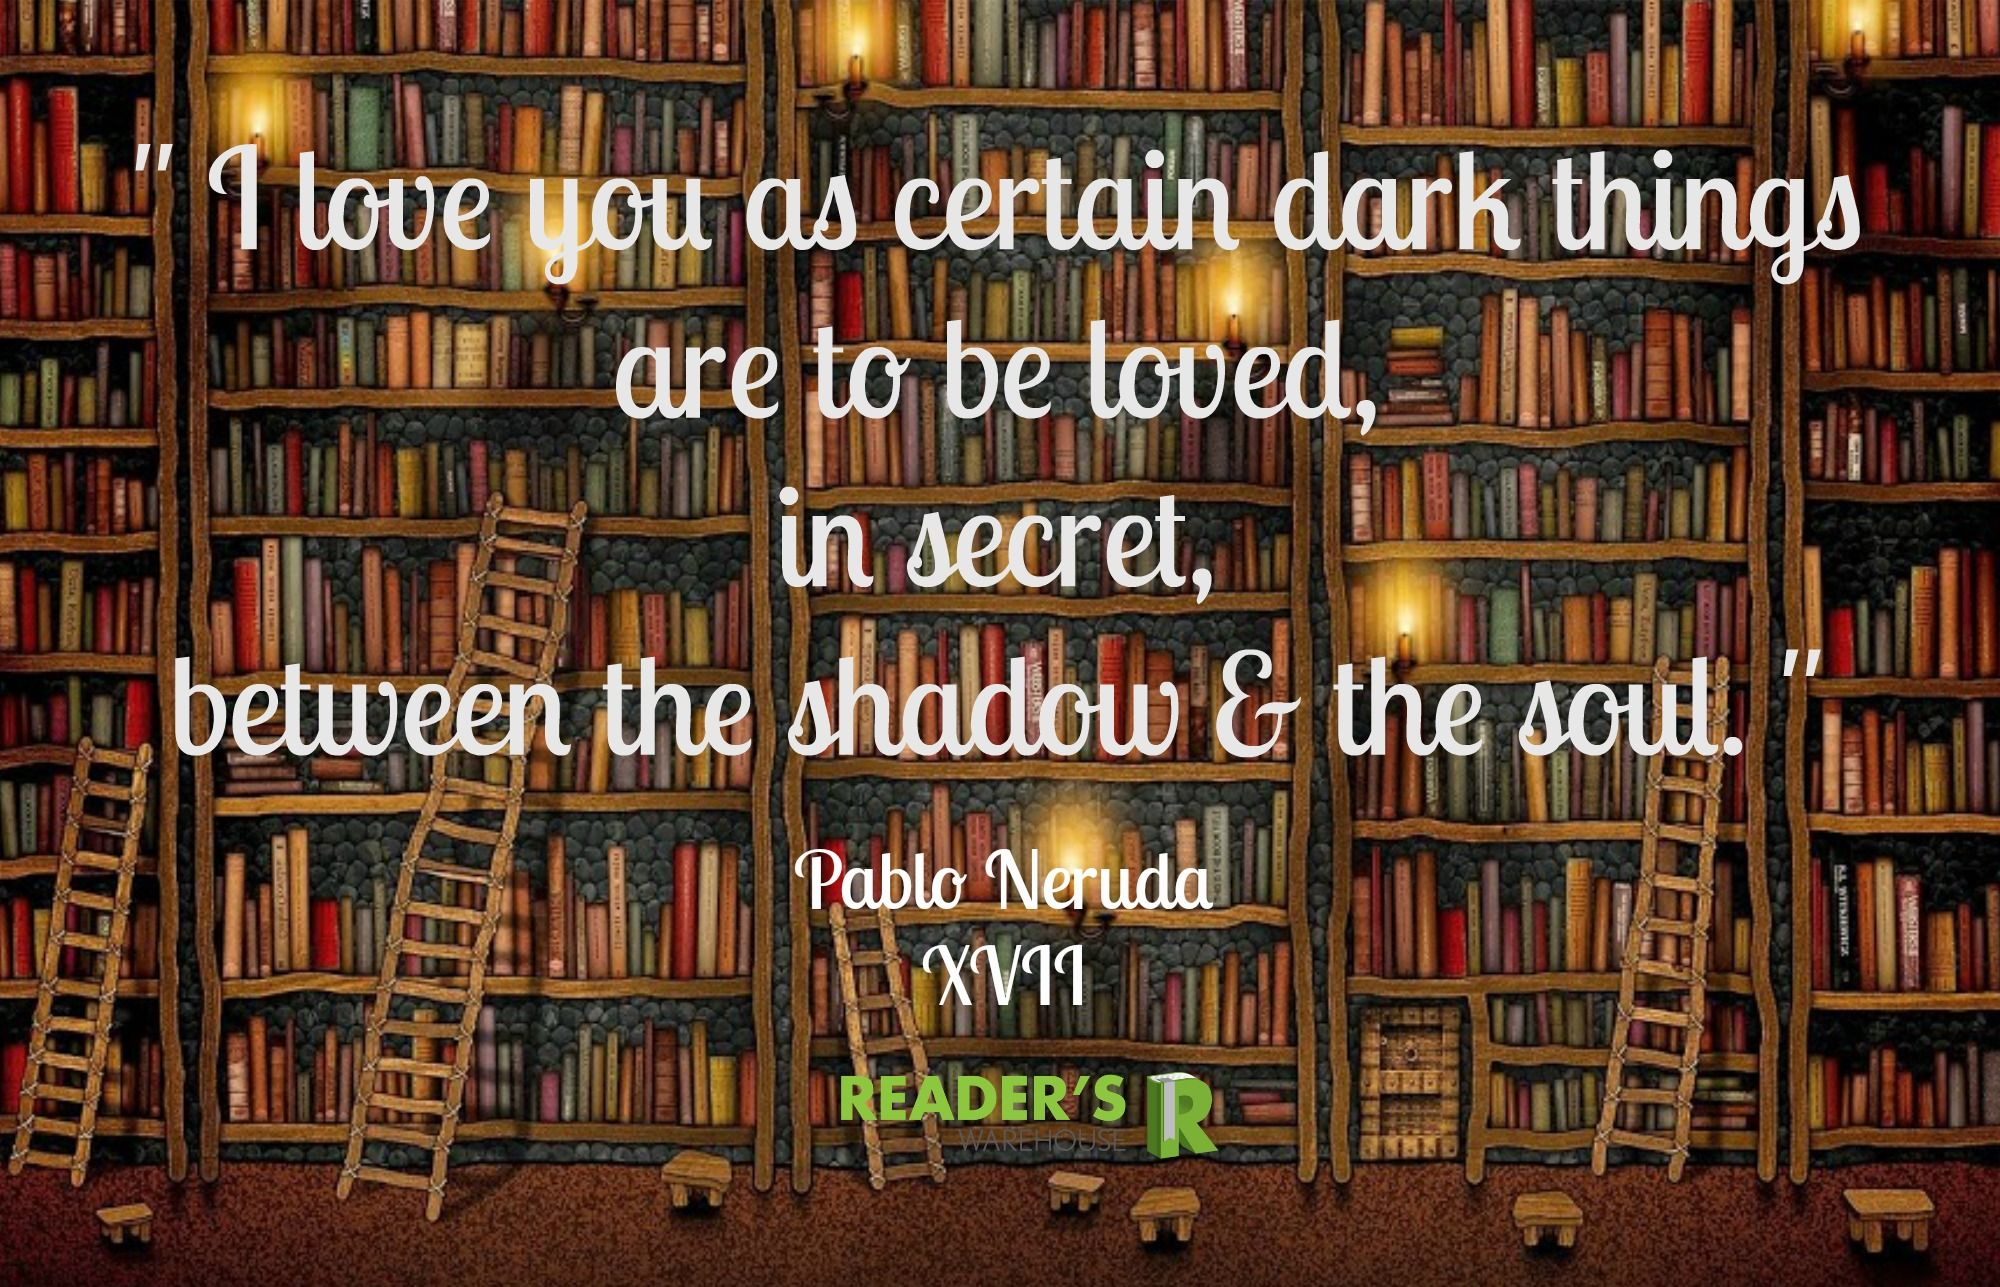 Do yourself a favour and read Pablo Neruda's poems. His lyrical compositions and choice of words will make you weep... or maybe that's just us ;)